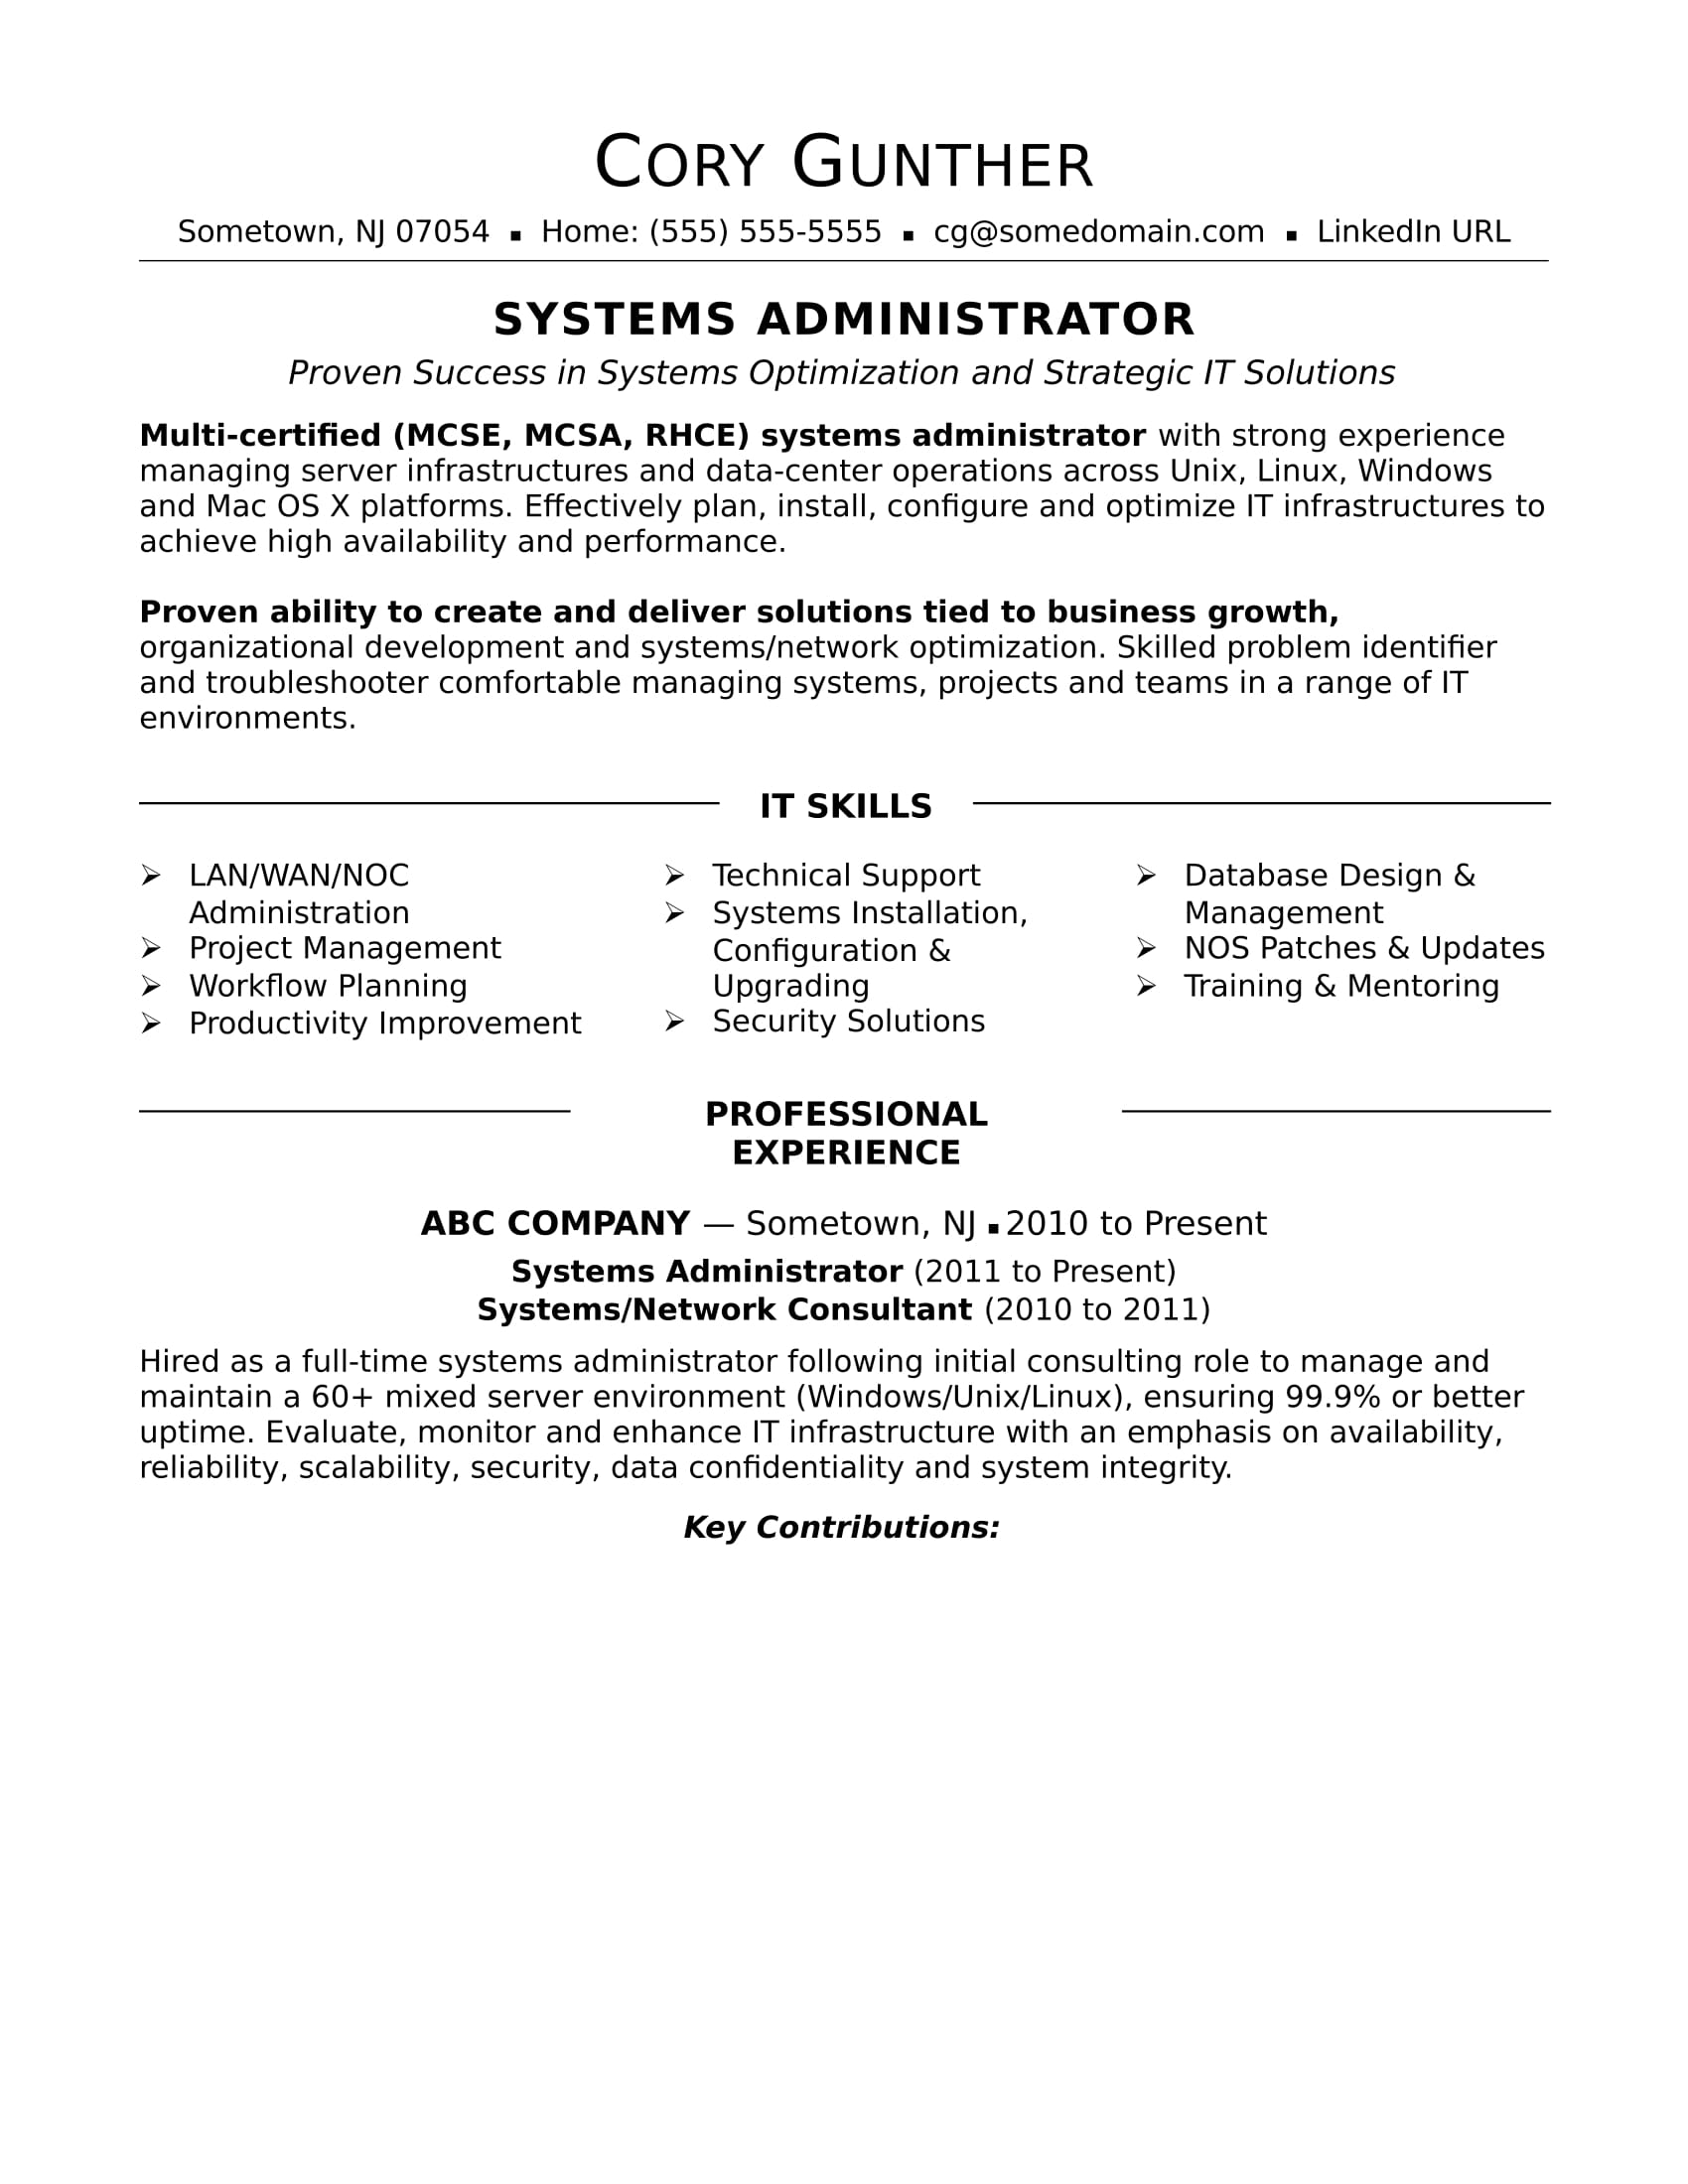 Sample Resume For An Experienced Systems Administrator Monster